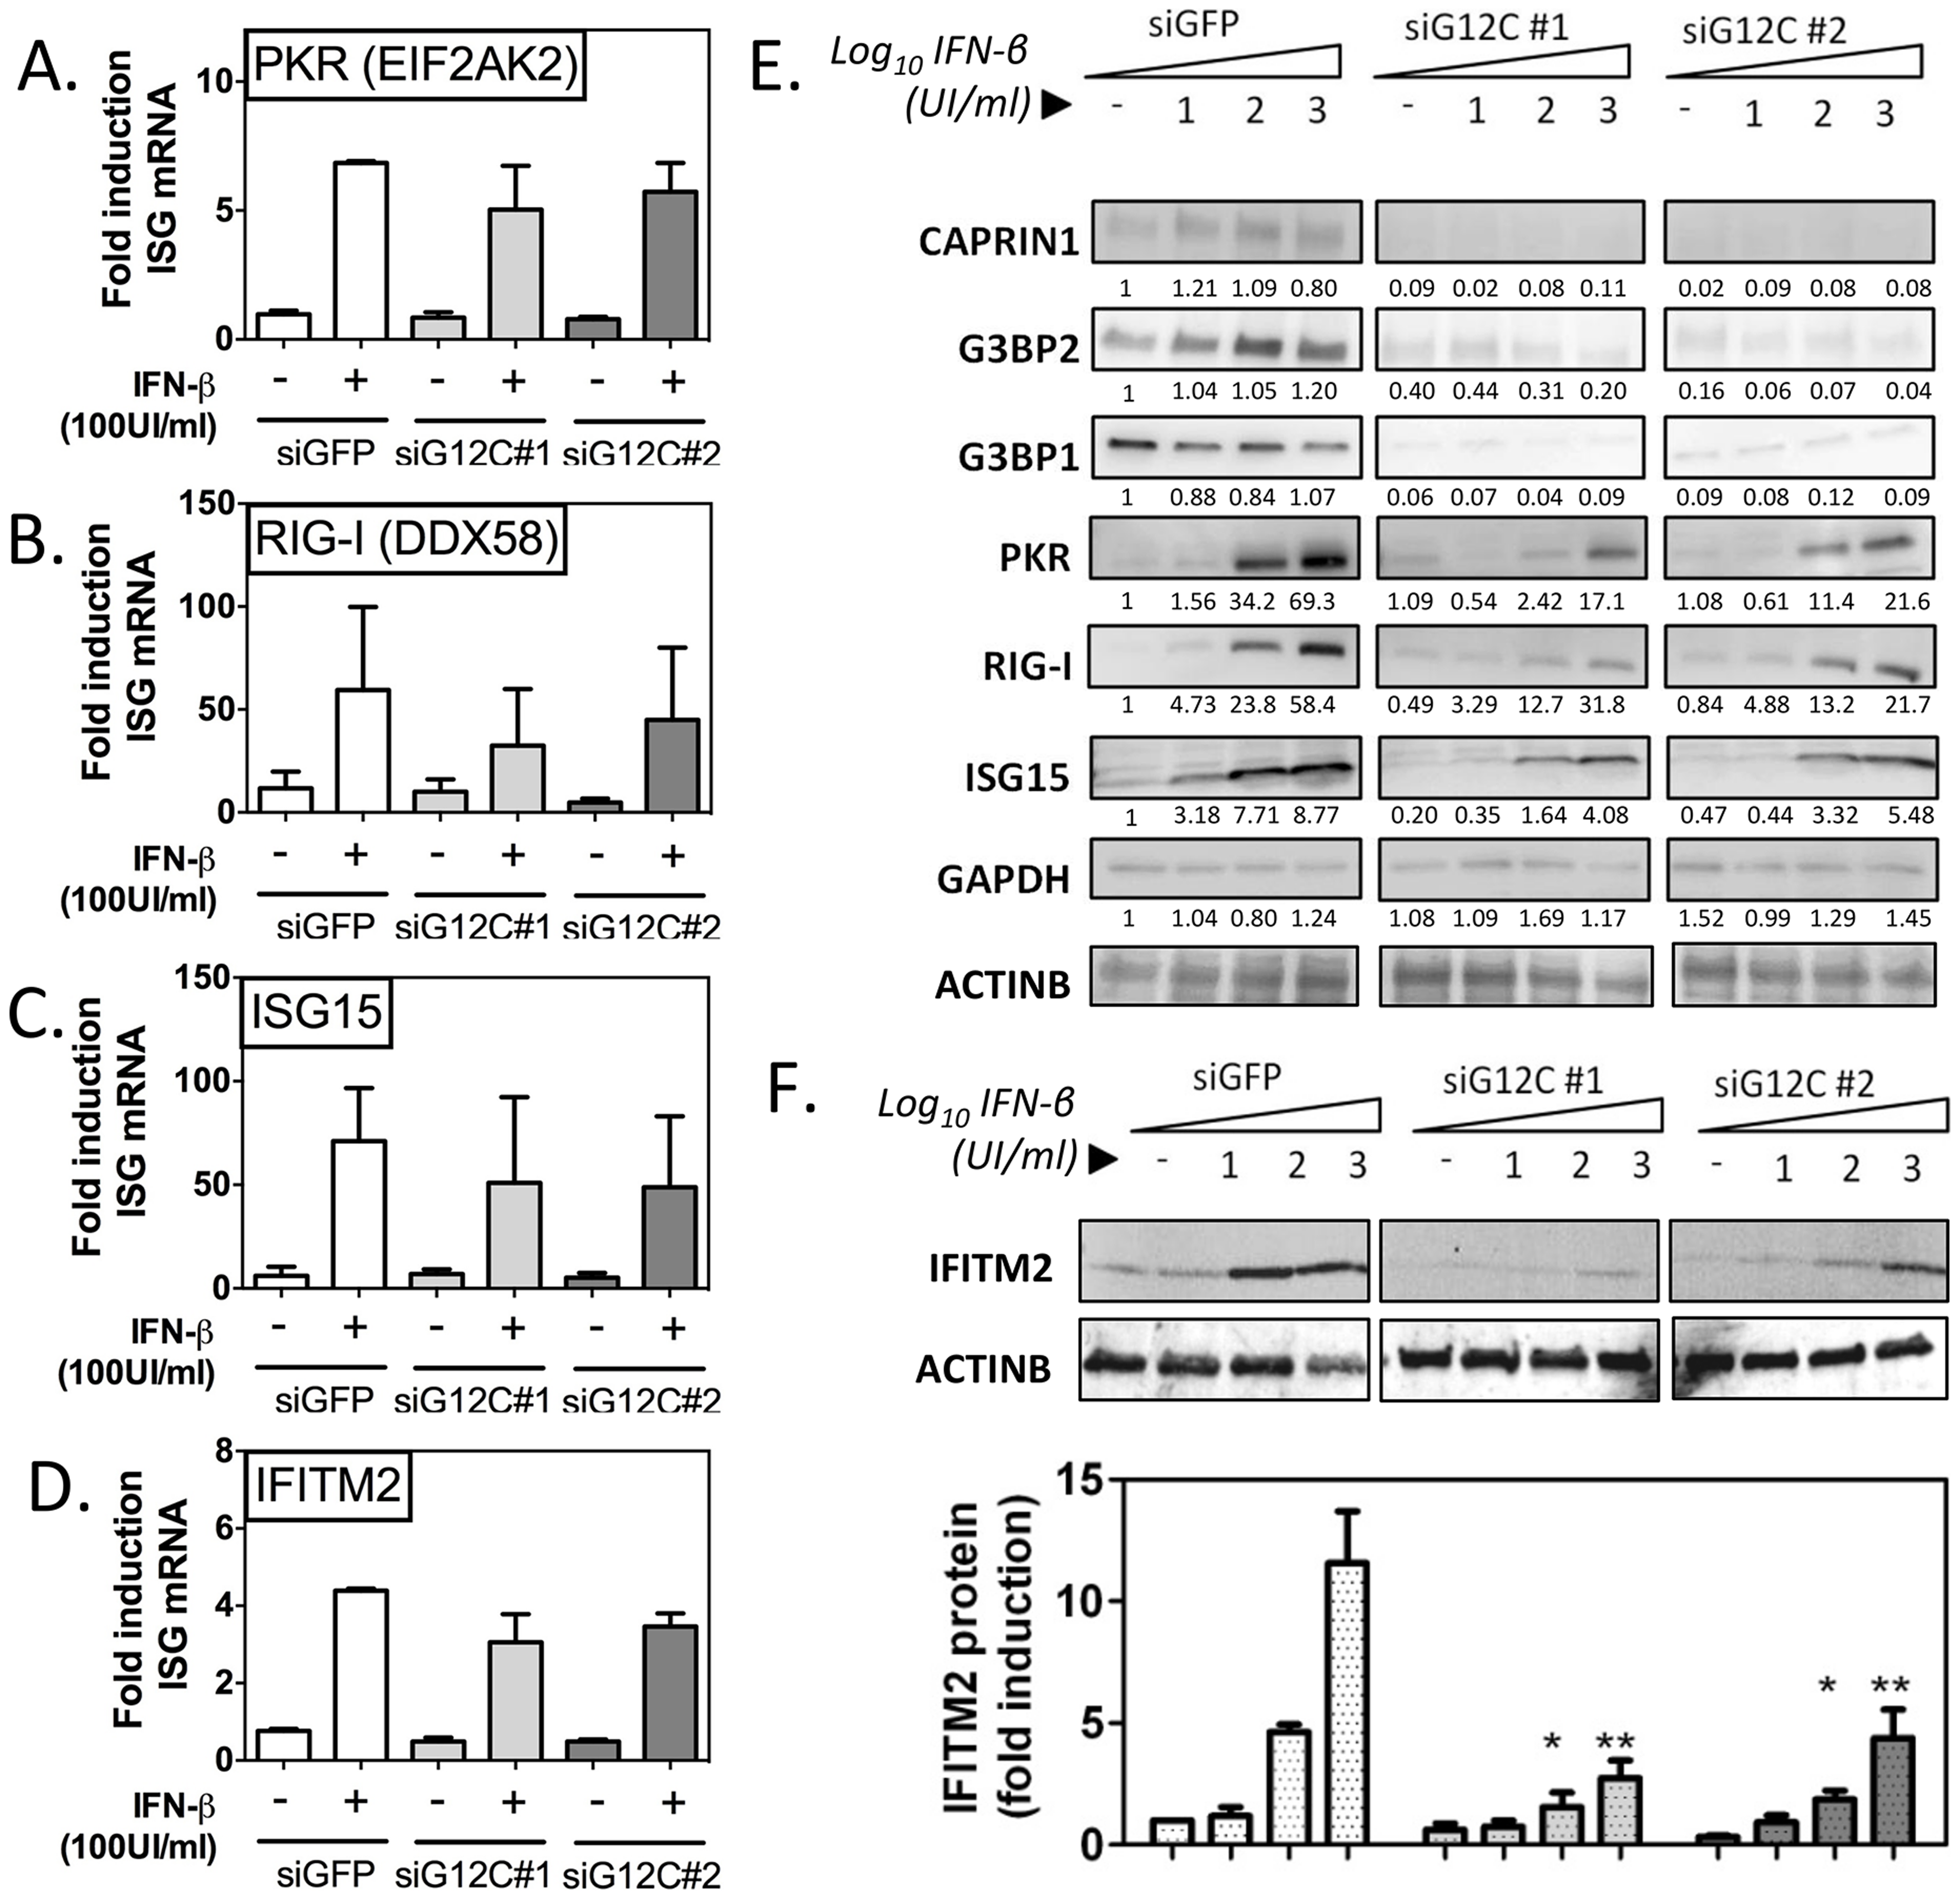 G3BP1, G3BP2 and CAPRIN1 regulate establishment of the antiviral state.